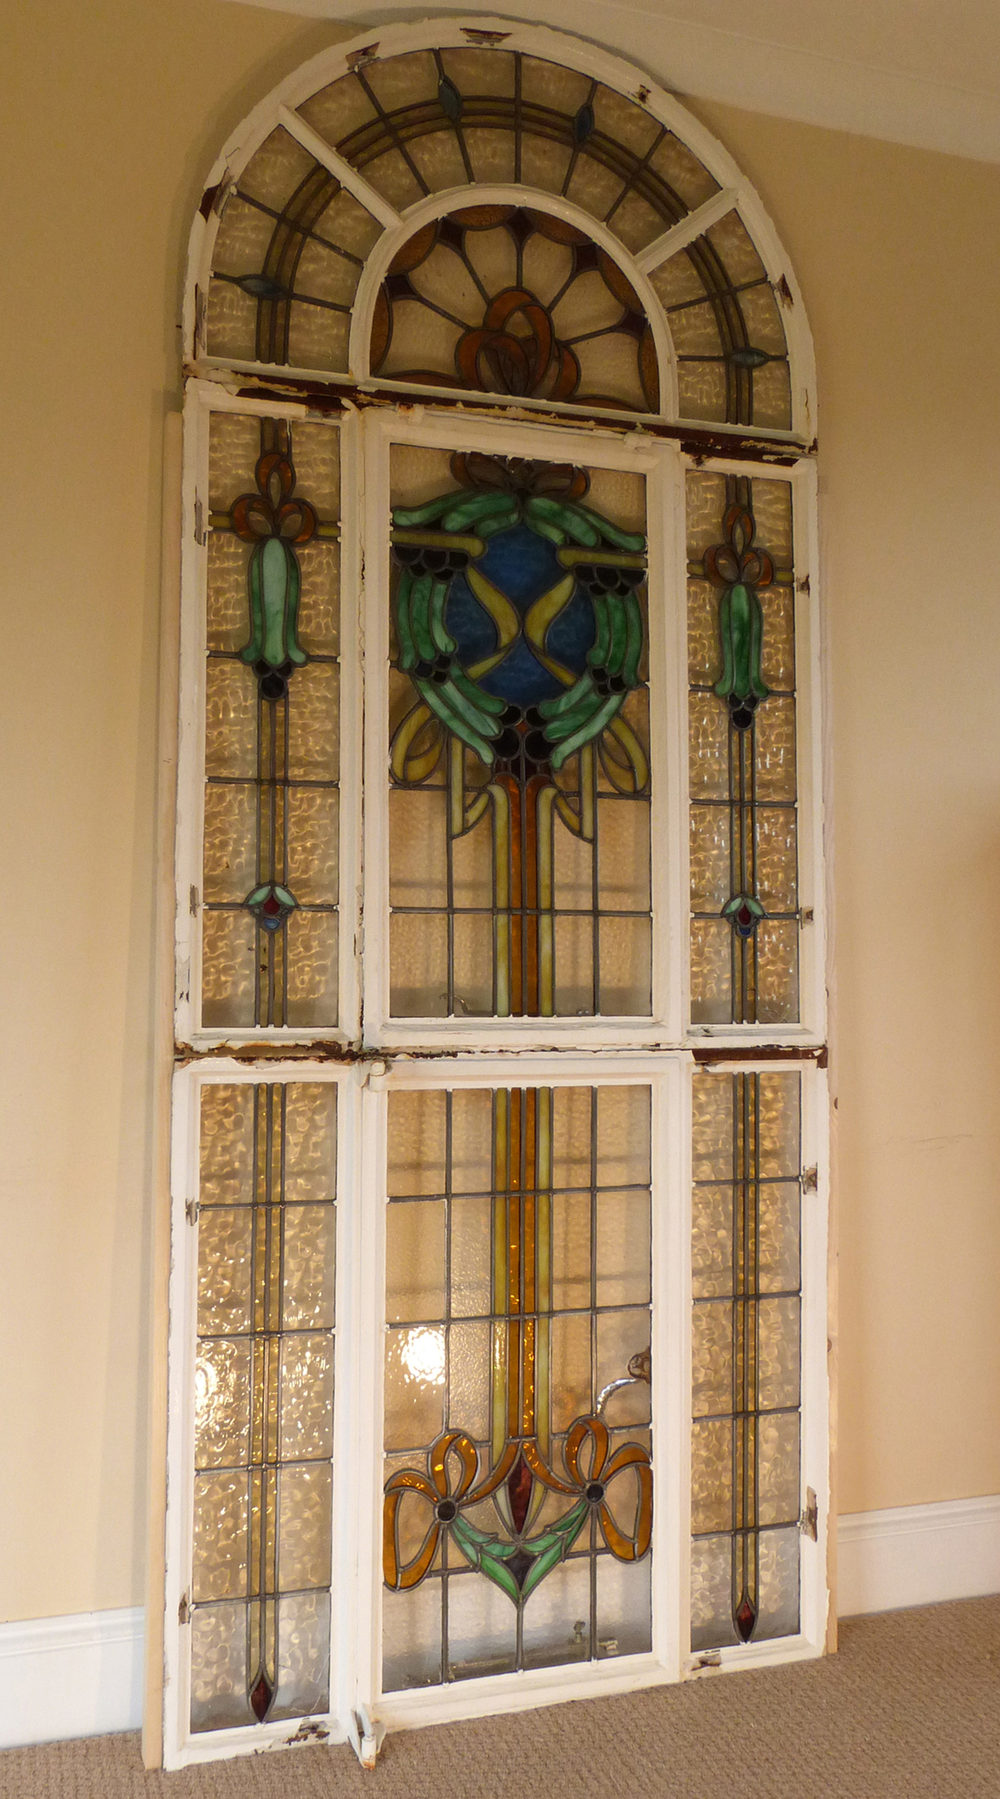 Leaded Glass Windows : Antiques atlas a large stained glass leaded window